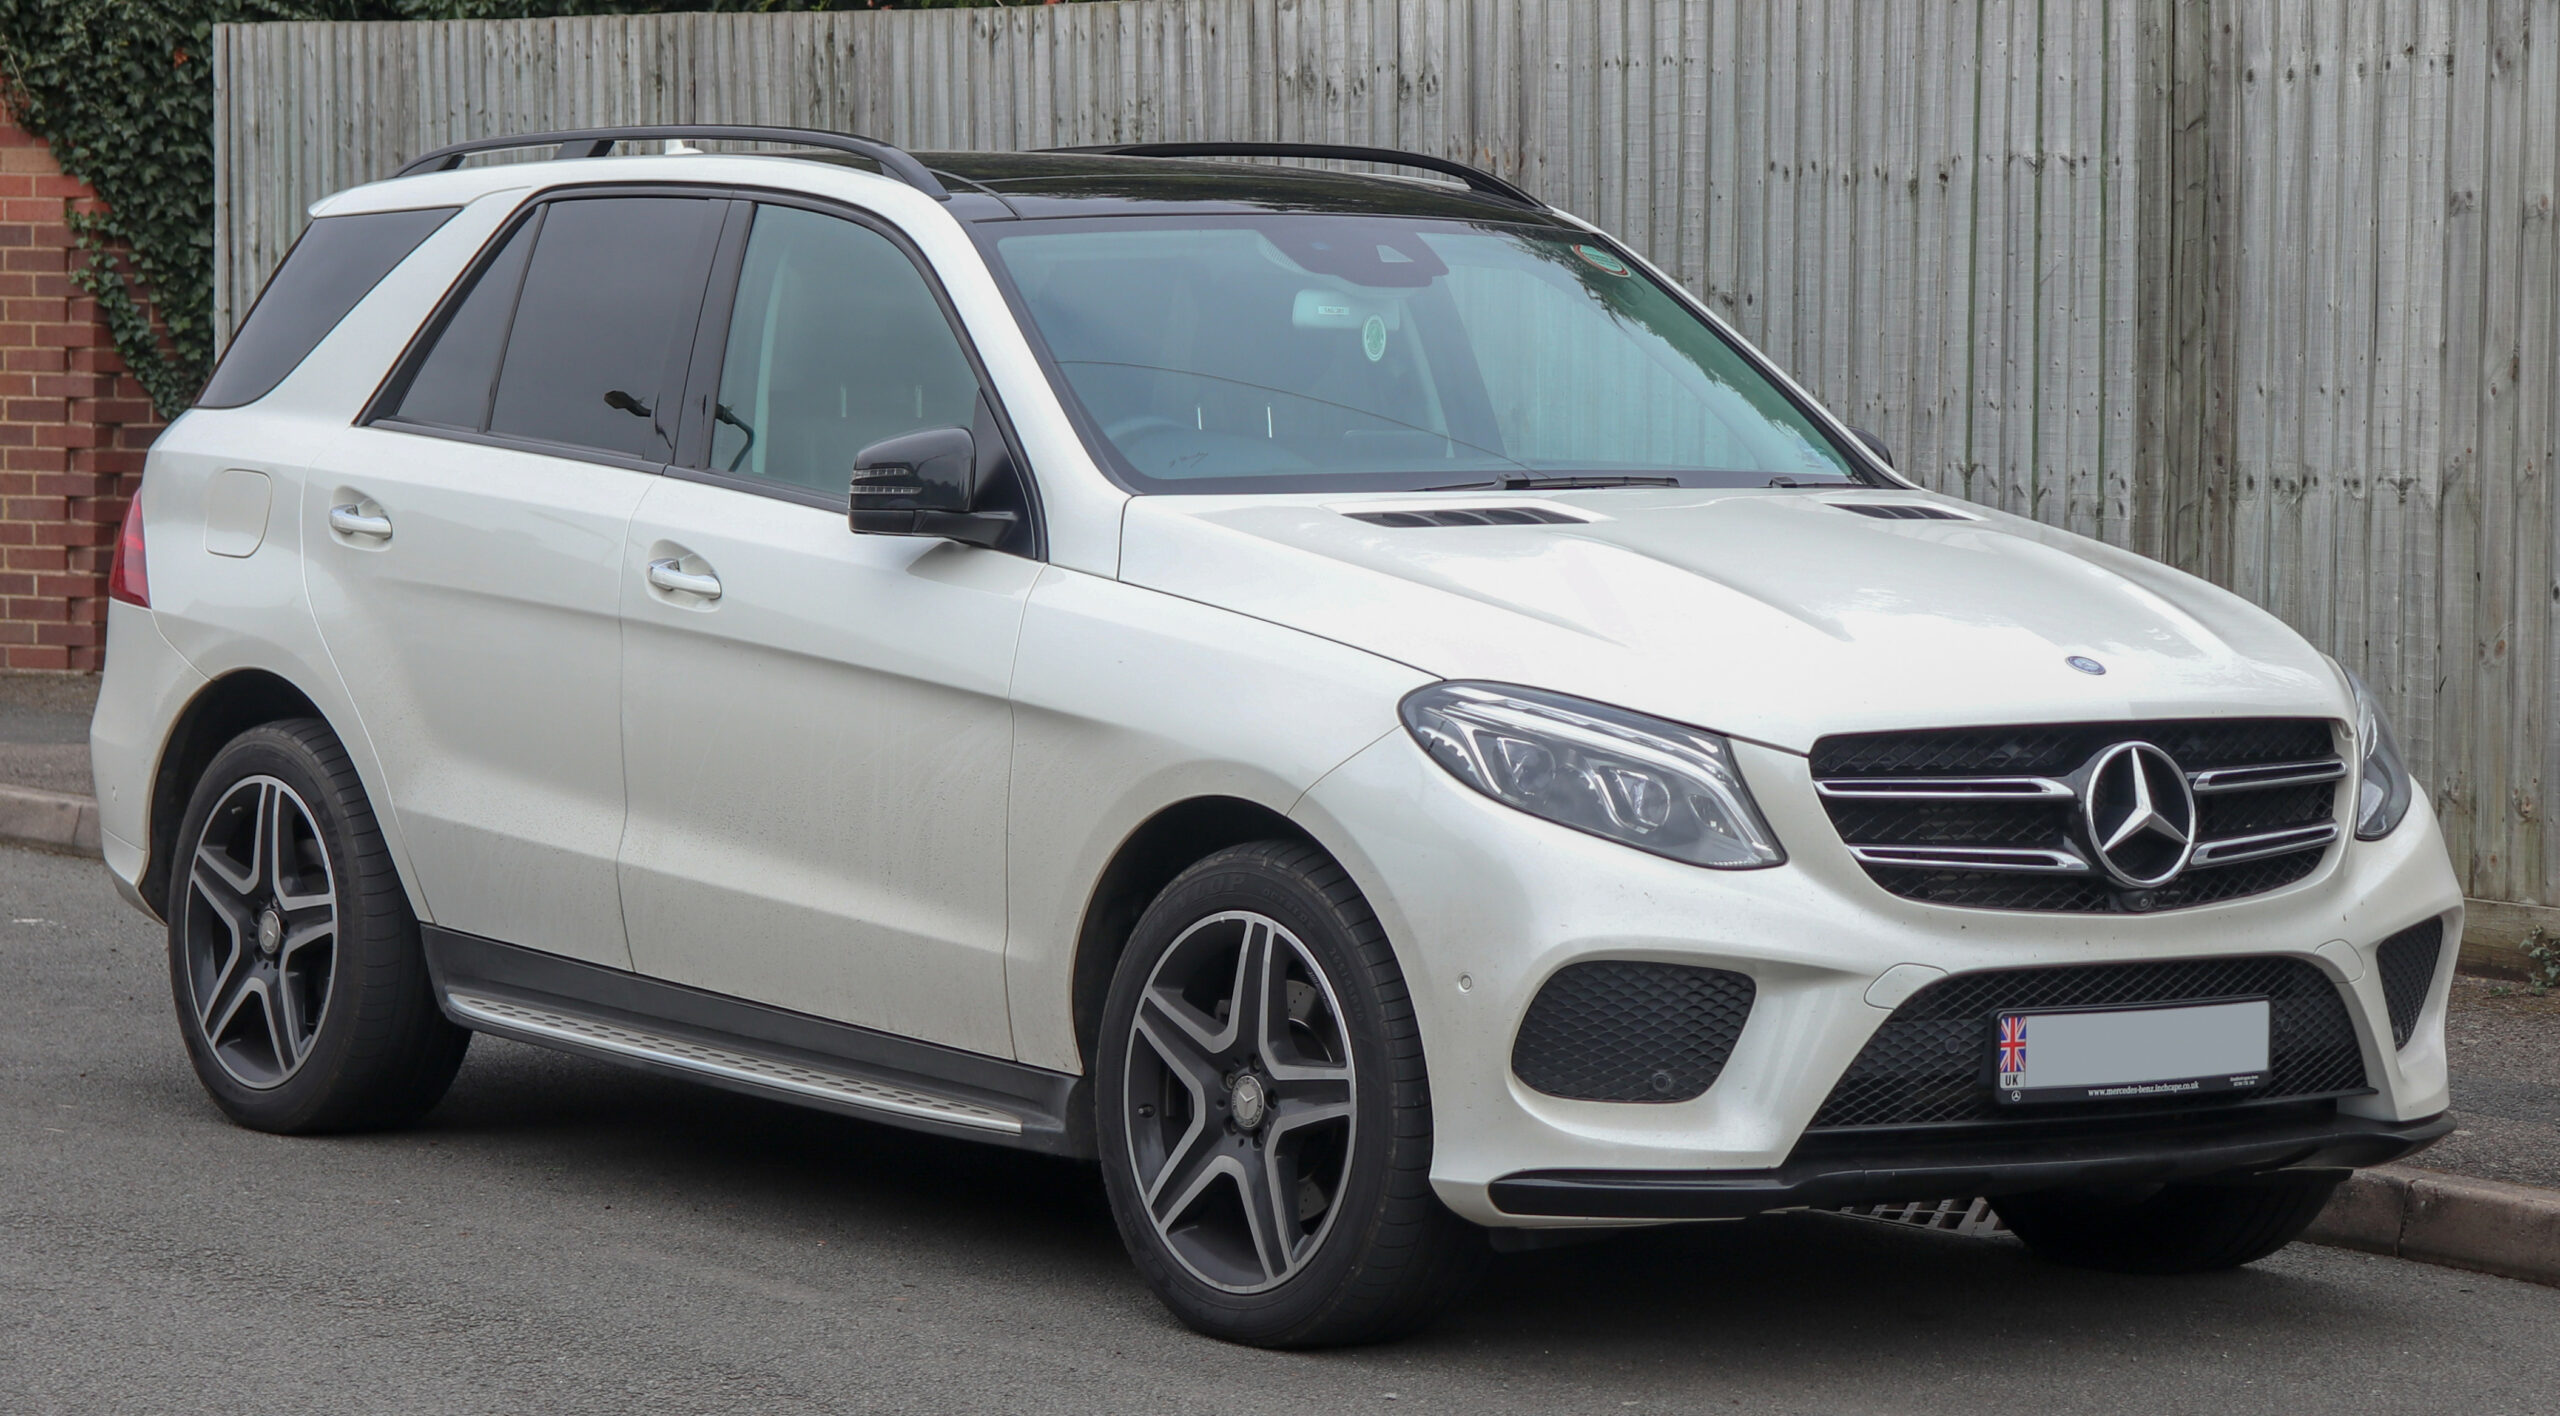 Mercedes-Benz M-Class - Wikipedia - mercedes gle 2020 indonesia